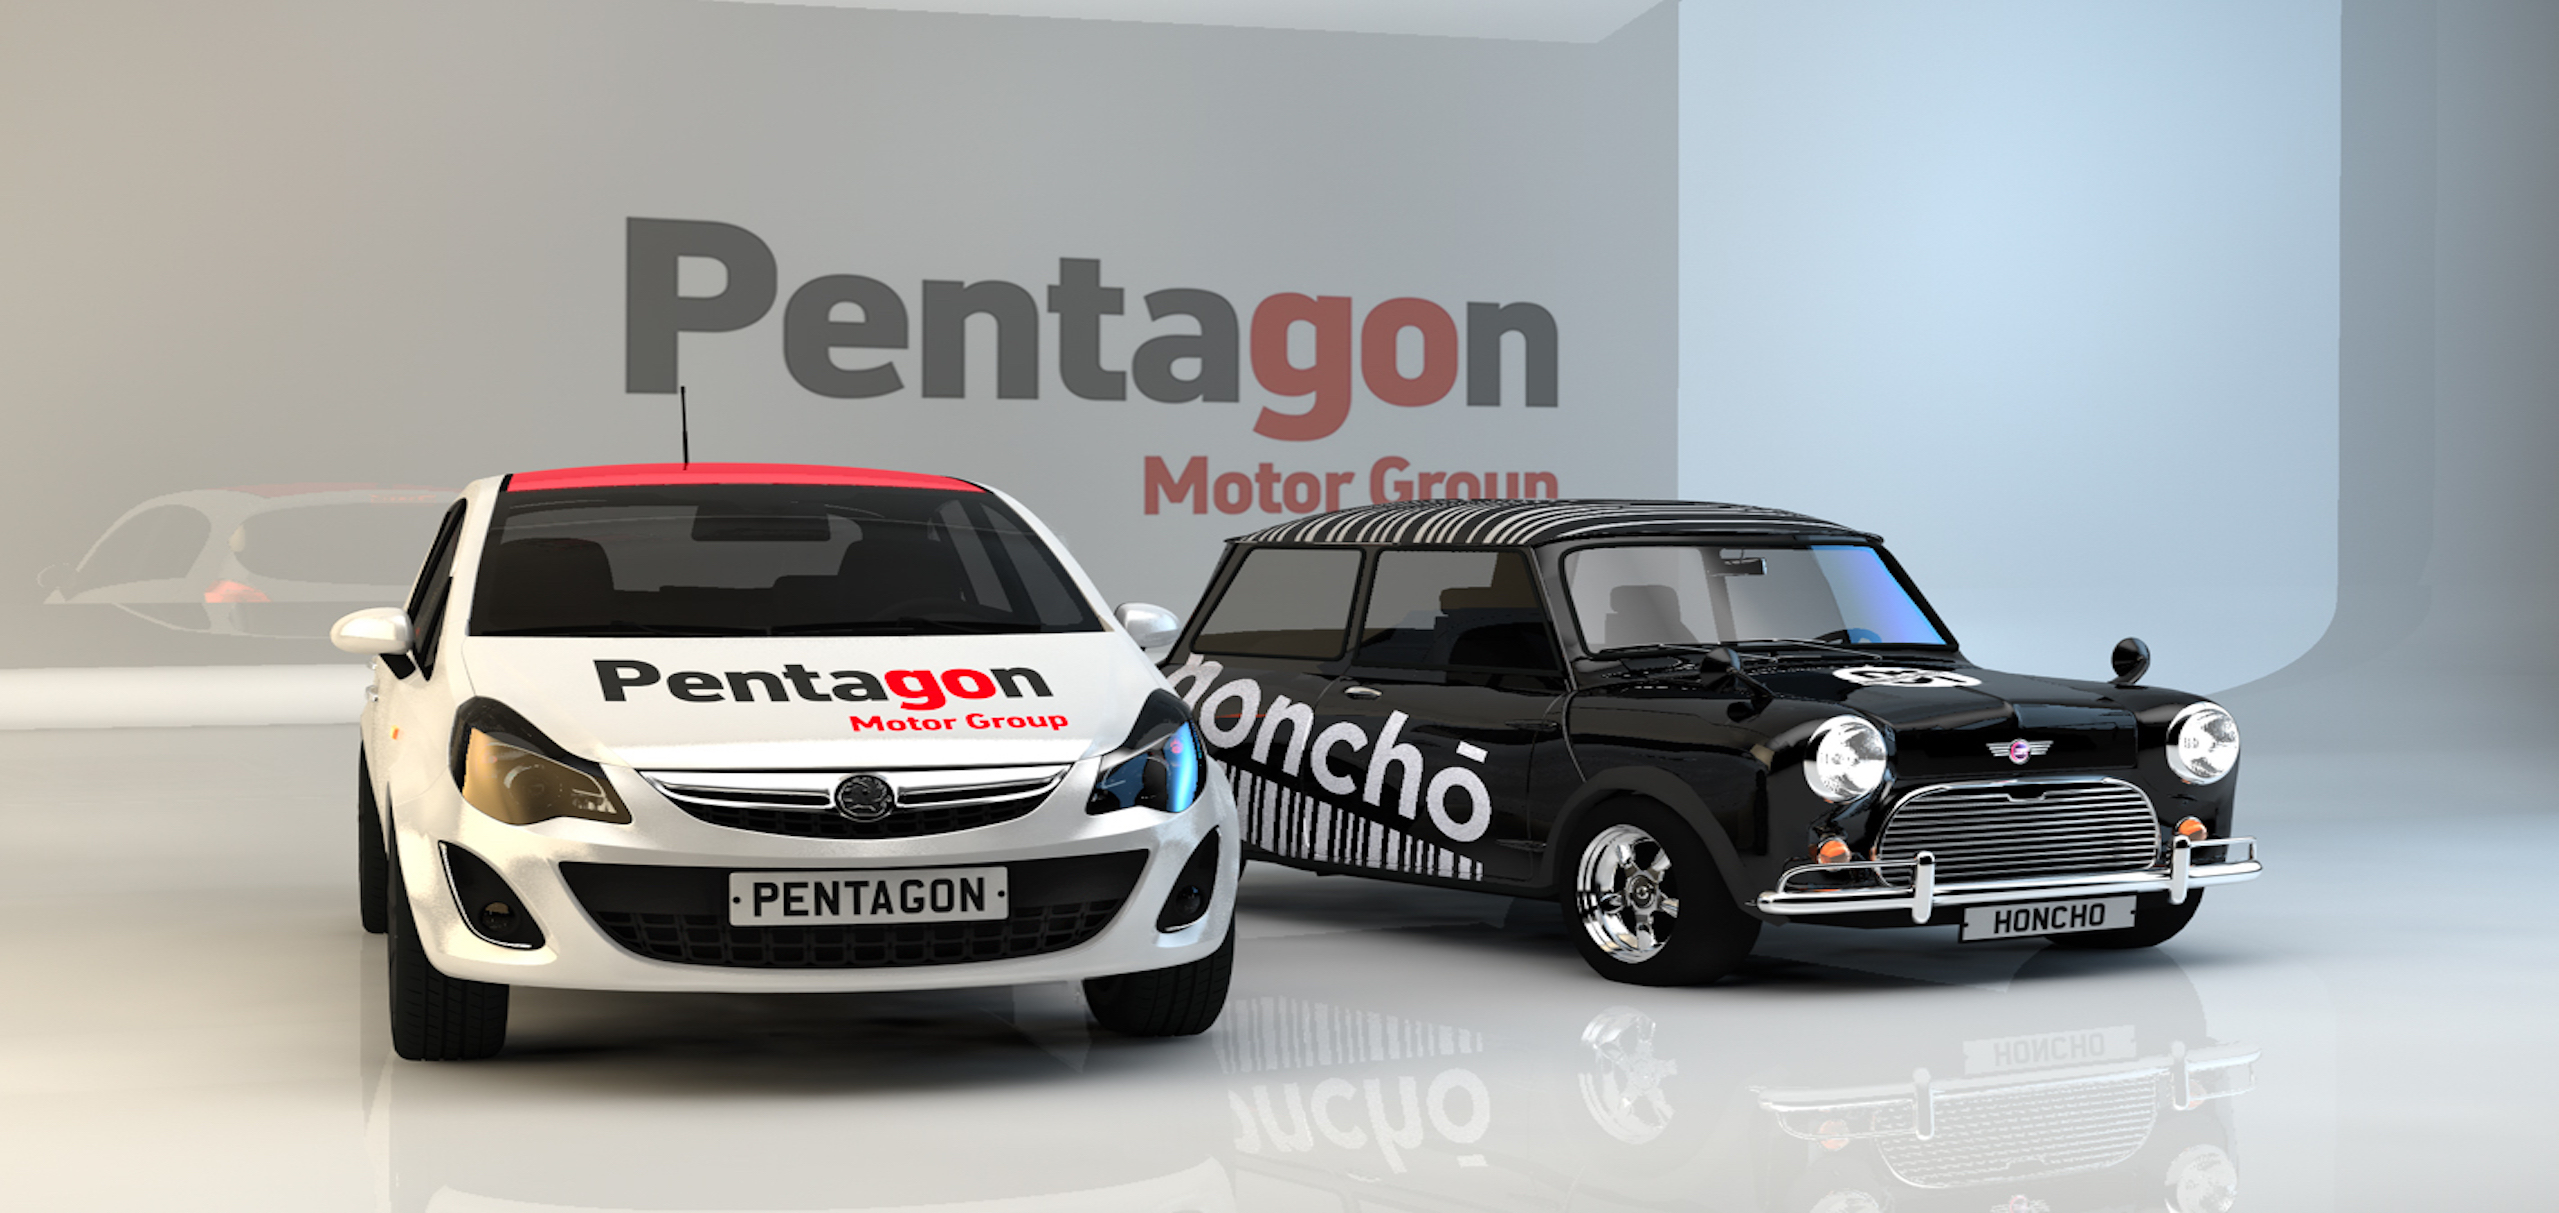 Pentagon Motor Group signs Honchō to drive its digital growth